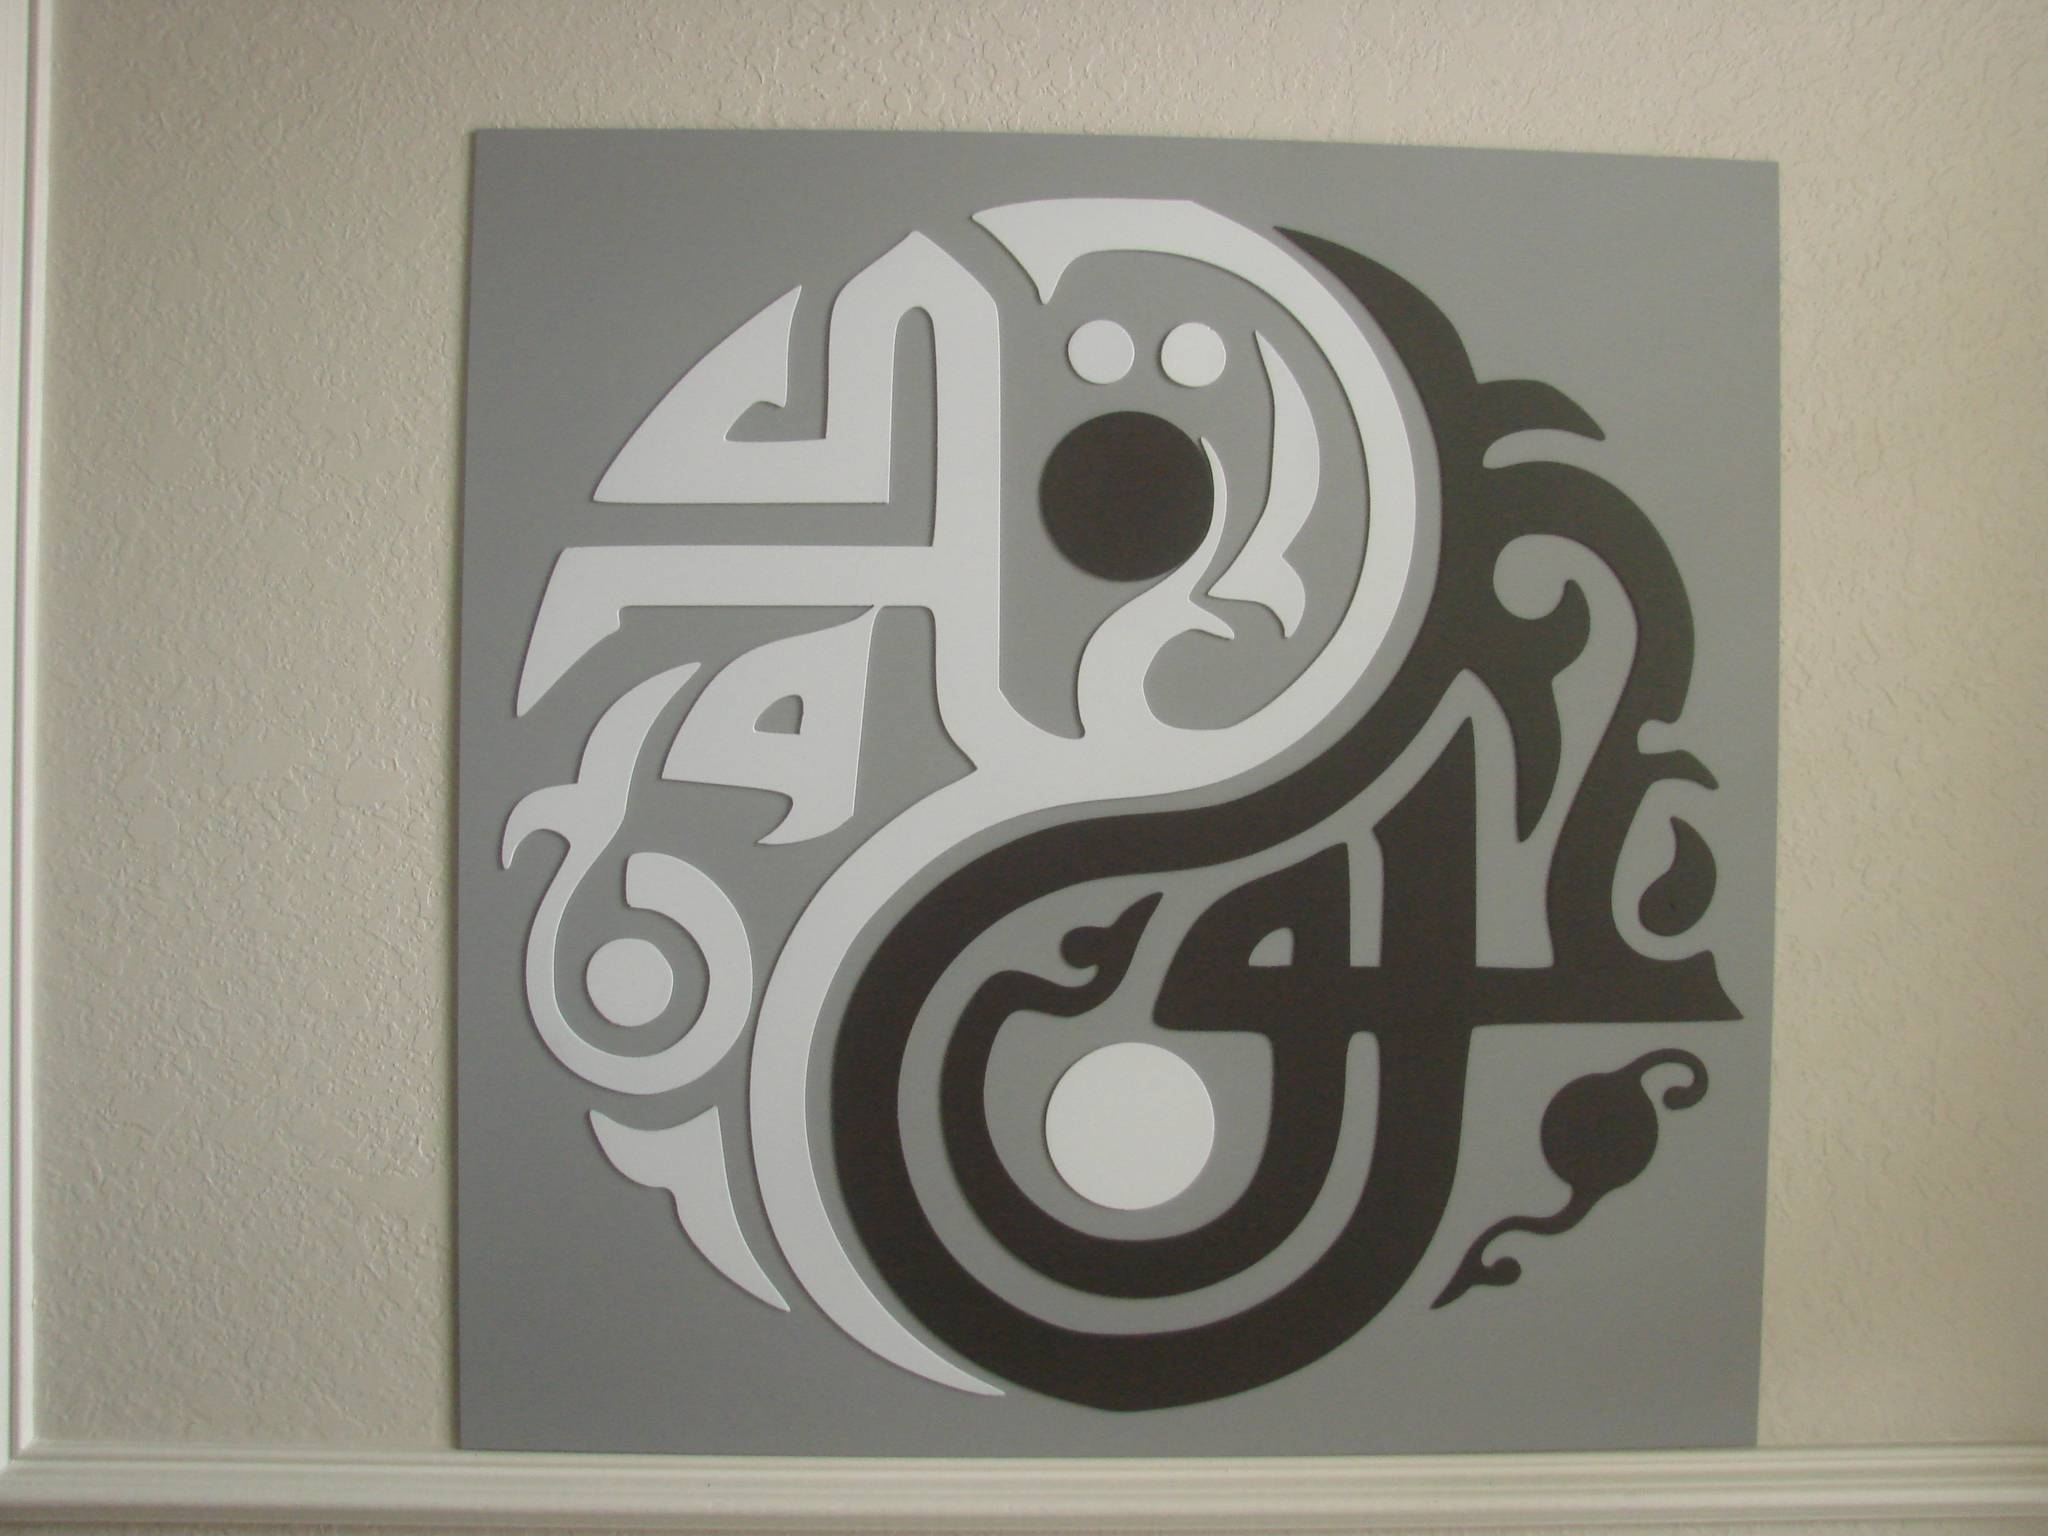 Yin Yang Abstract Metal Wall Art – : Intended For Most Popular Yin Yang Wall Art (Gallery 4 of 30)